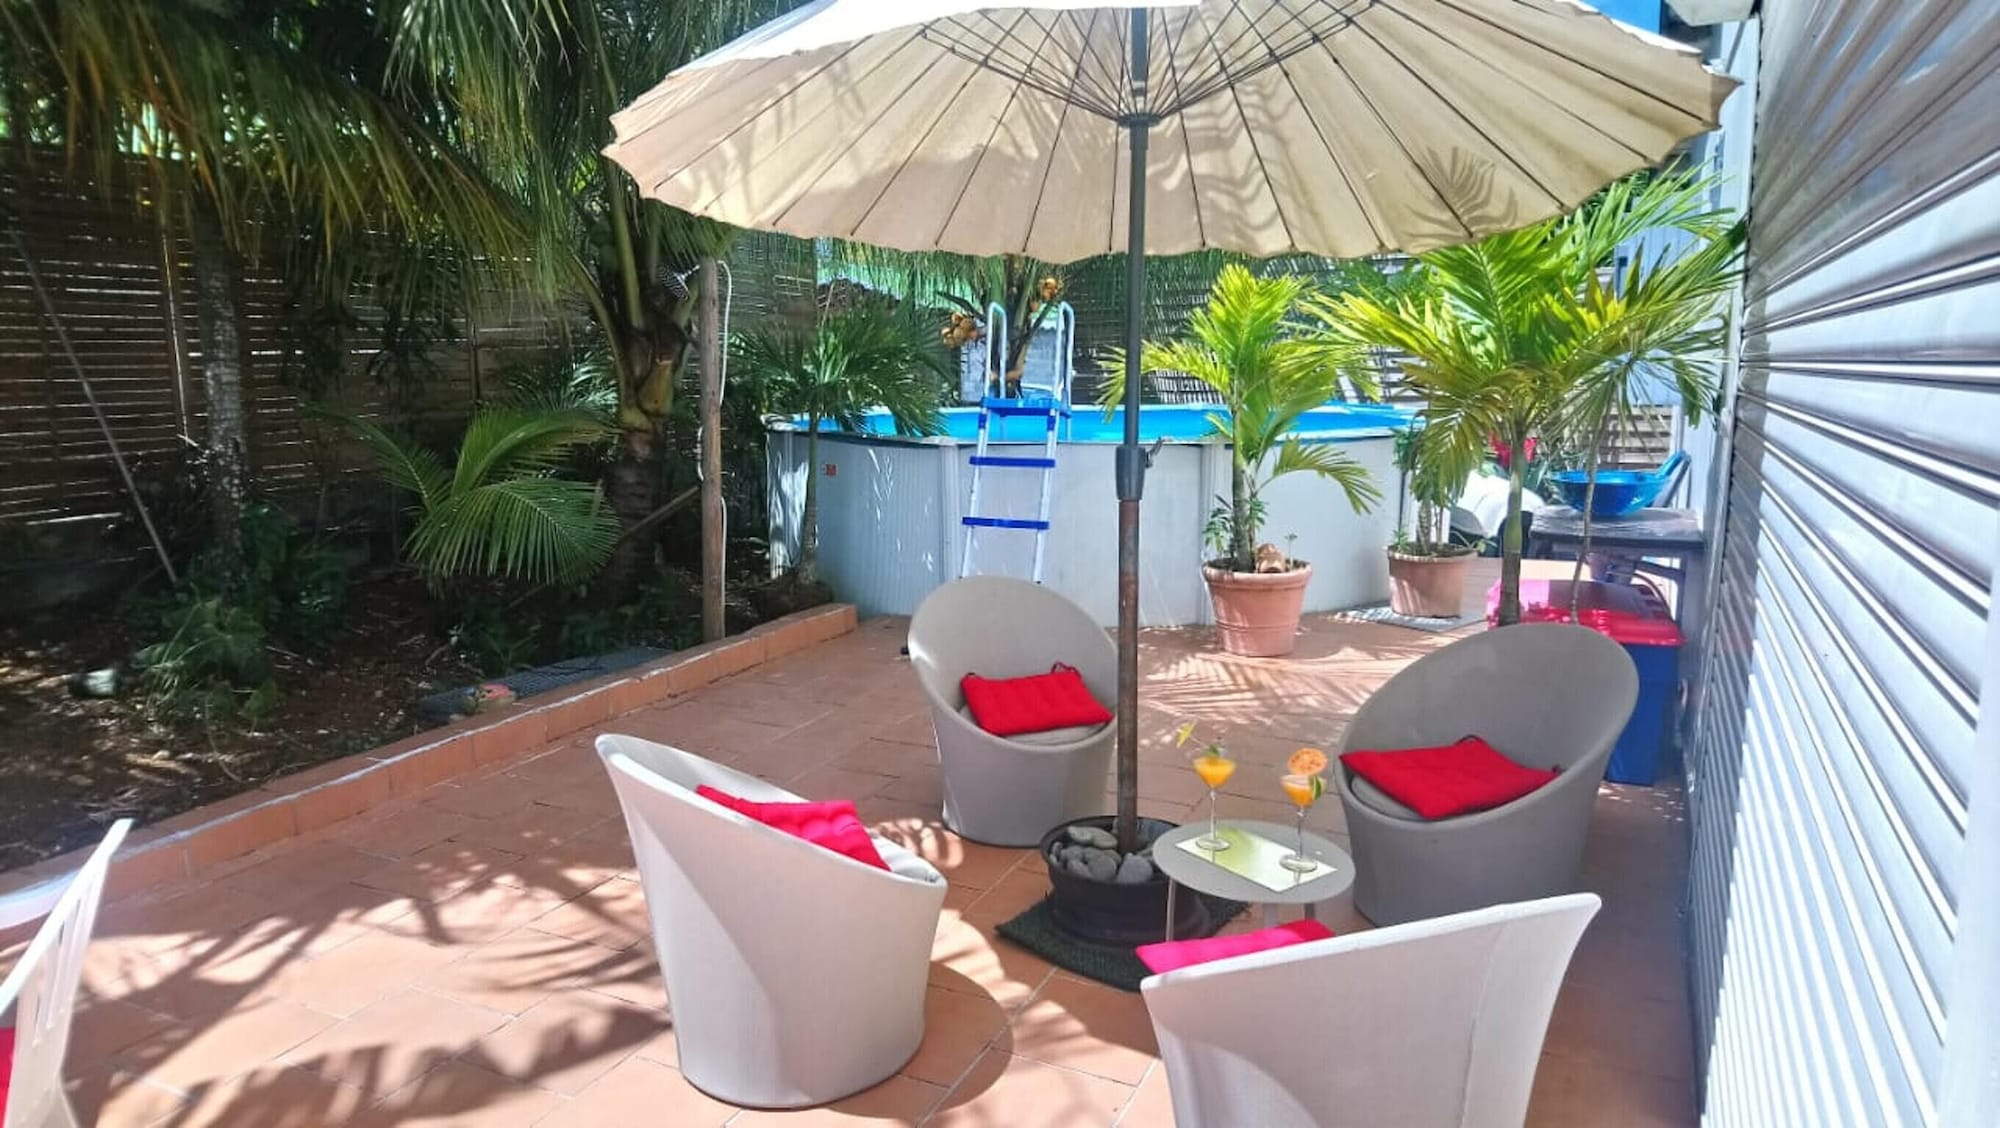 Bungalow With one Bedroom in Sainte-rose, With Private Pool, Enclosed Garden and Wifi - 4 km From the Beach, Sainte-Rose